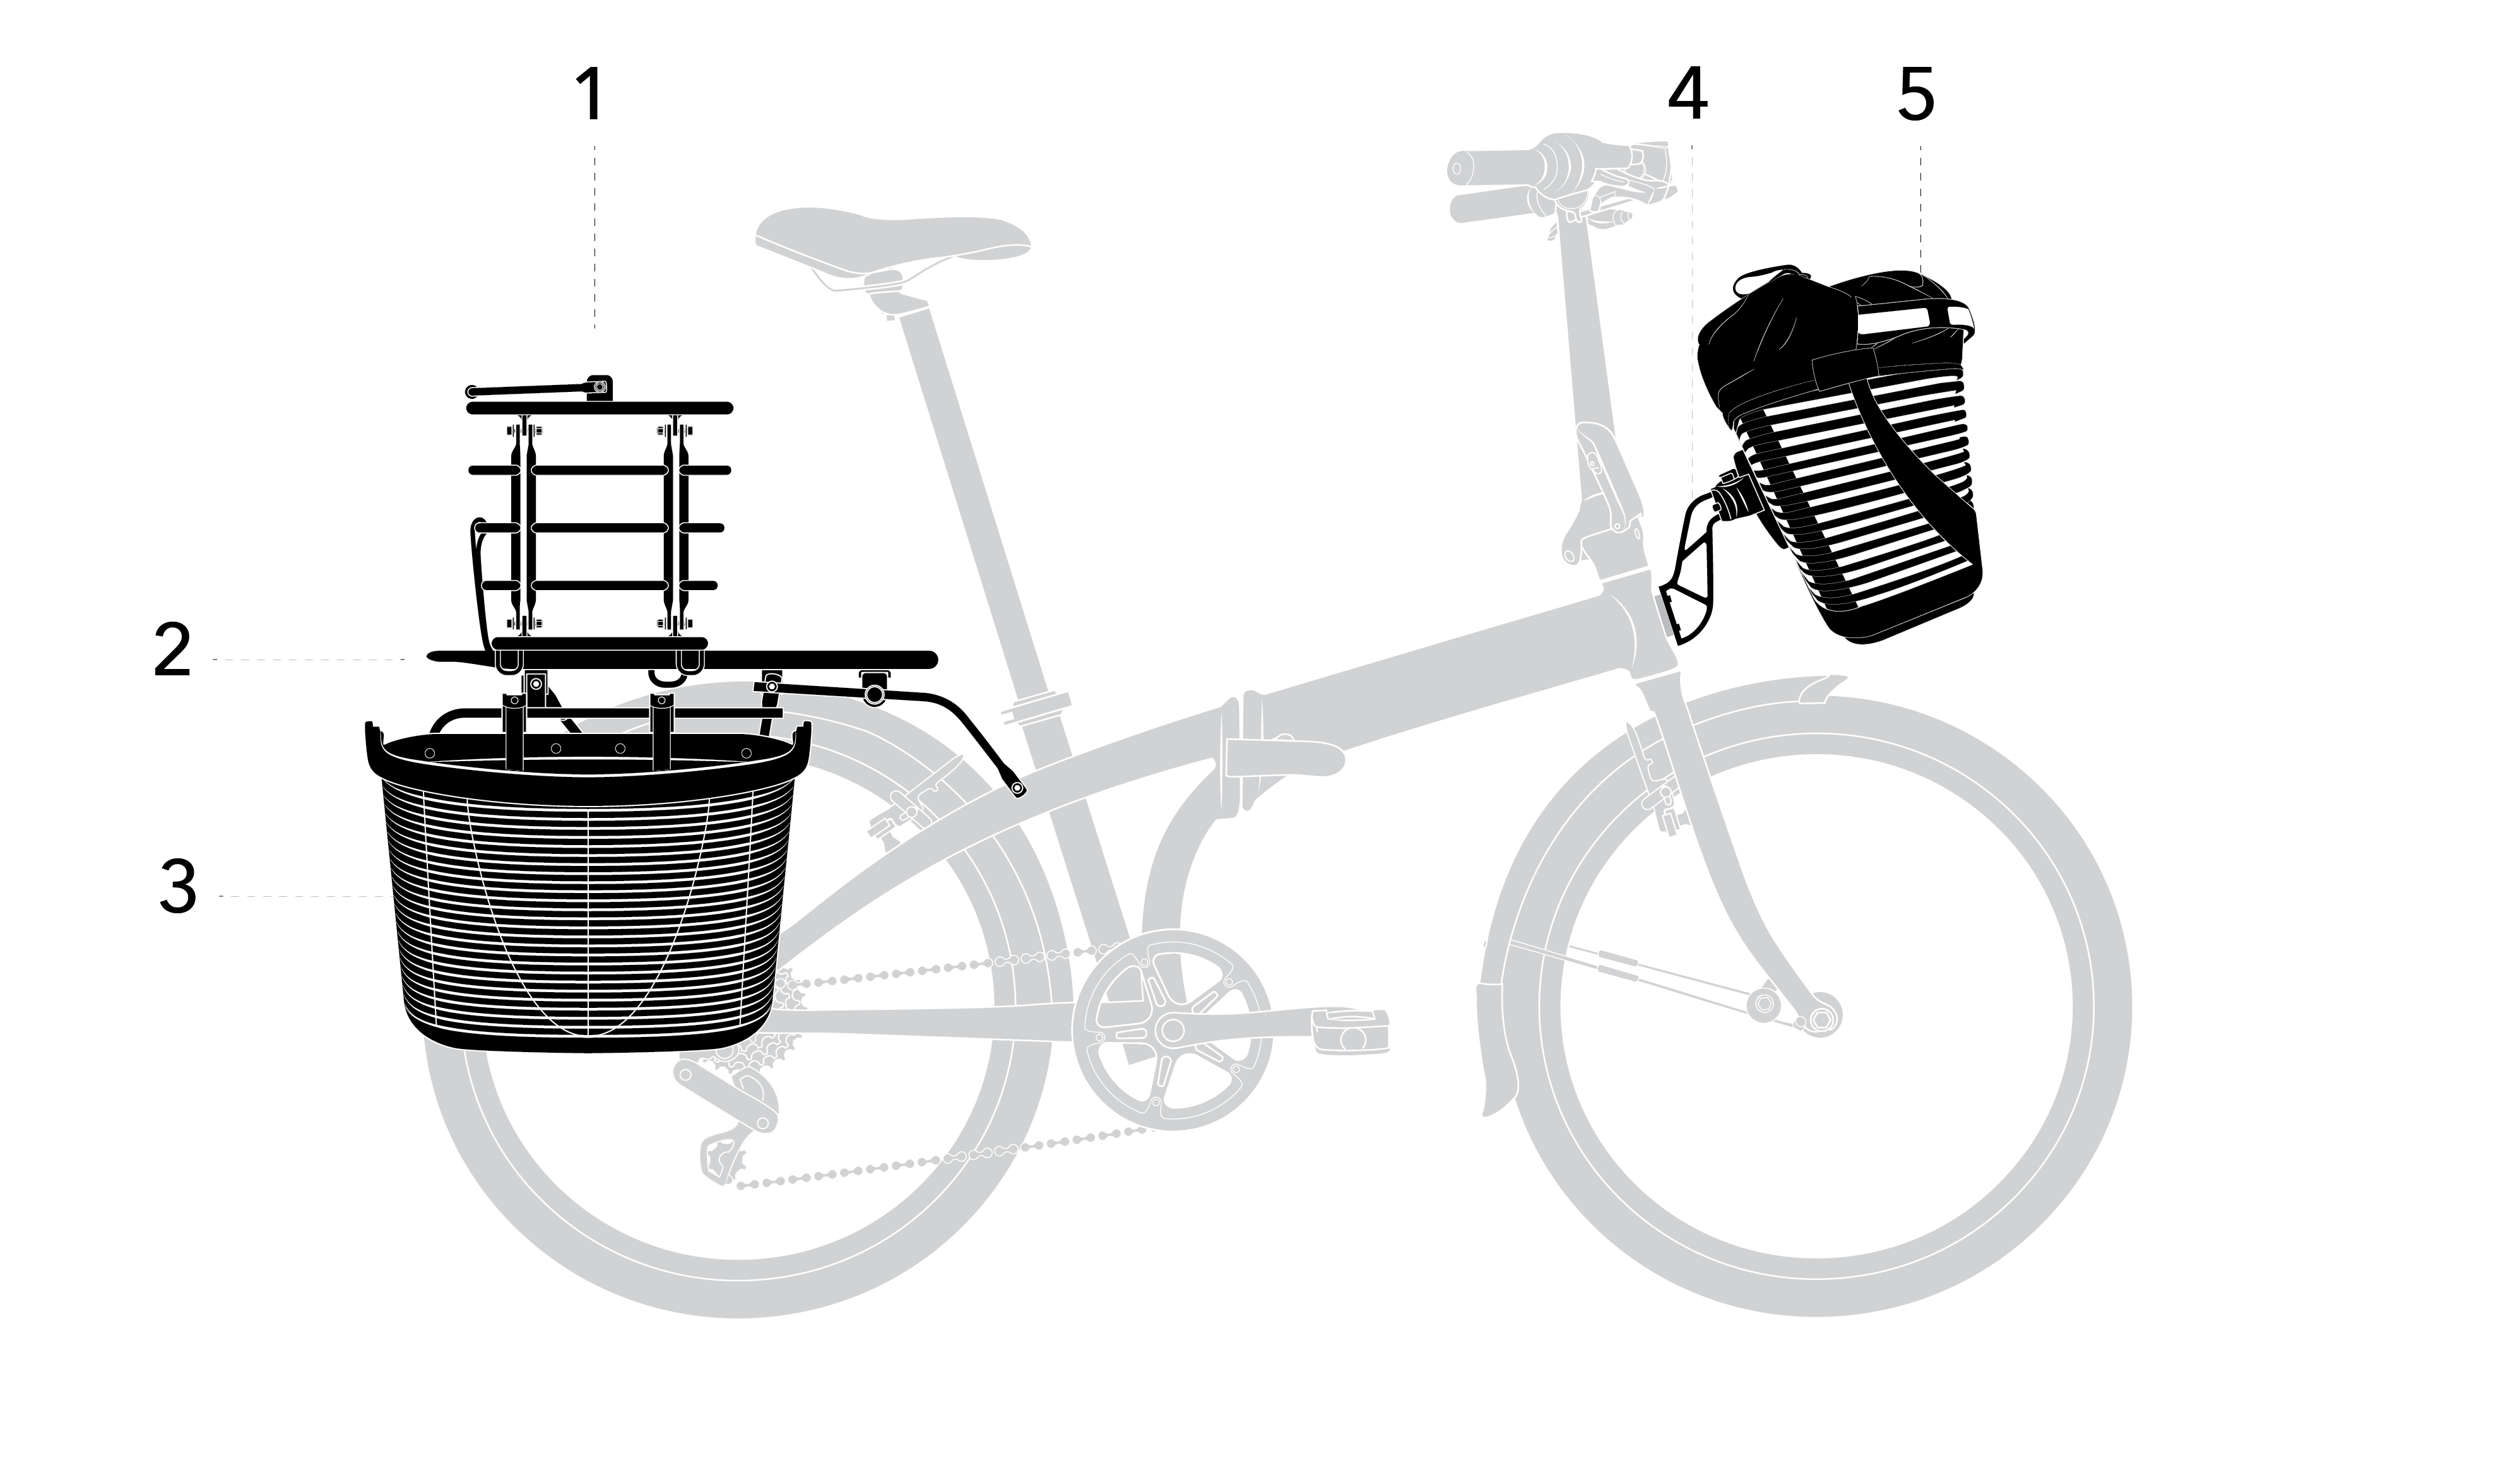 Pannier clip replacement. Boost your cargo capacity